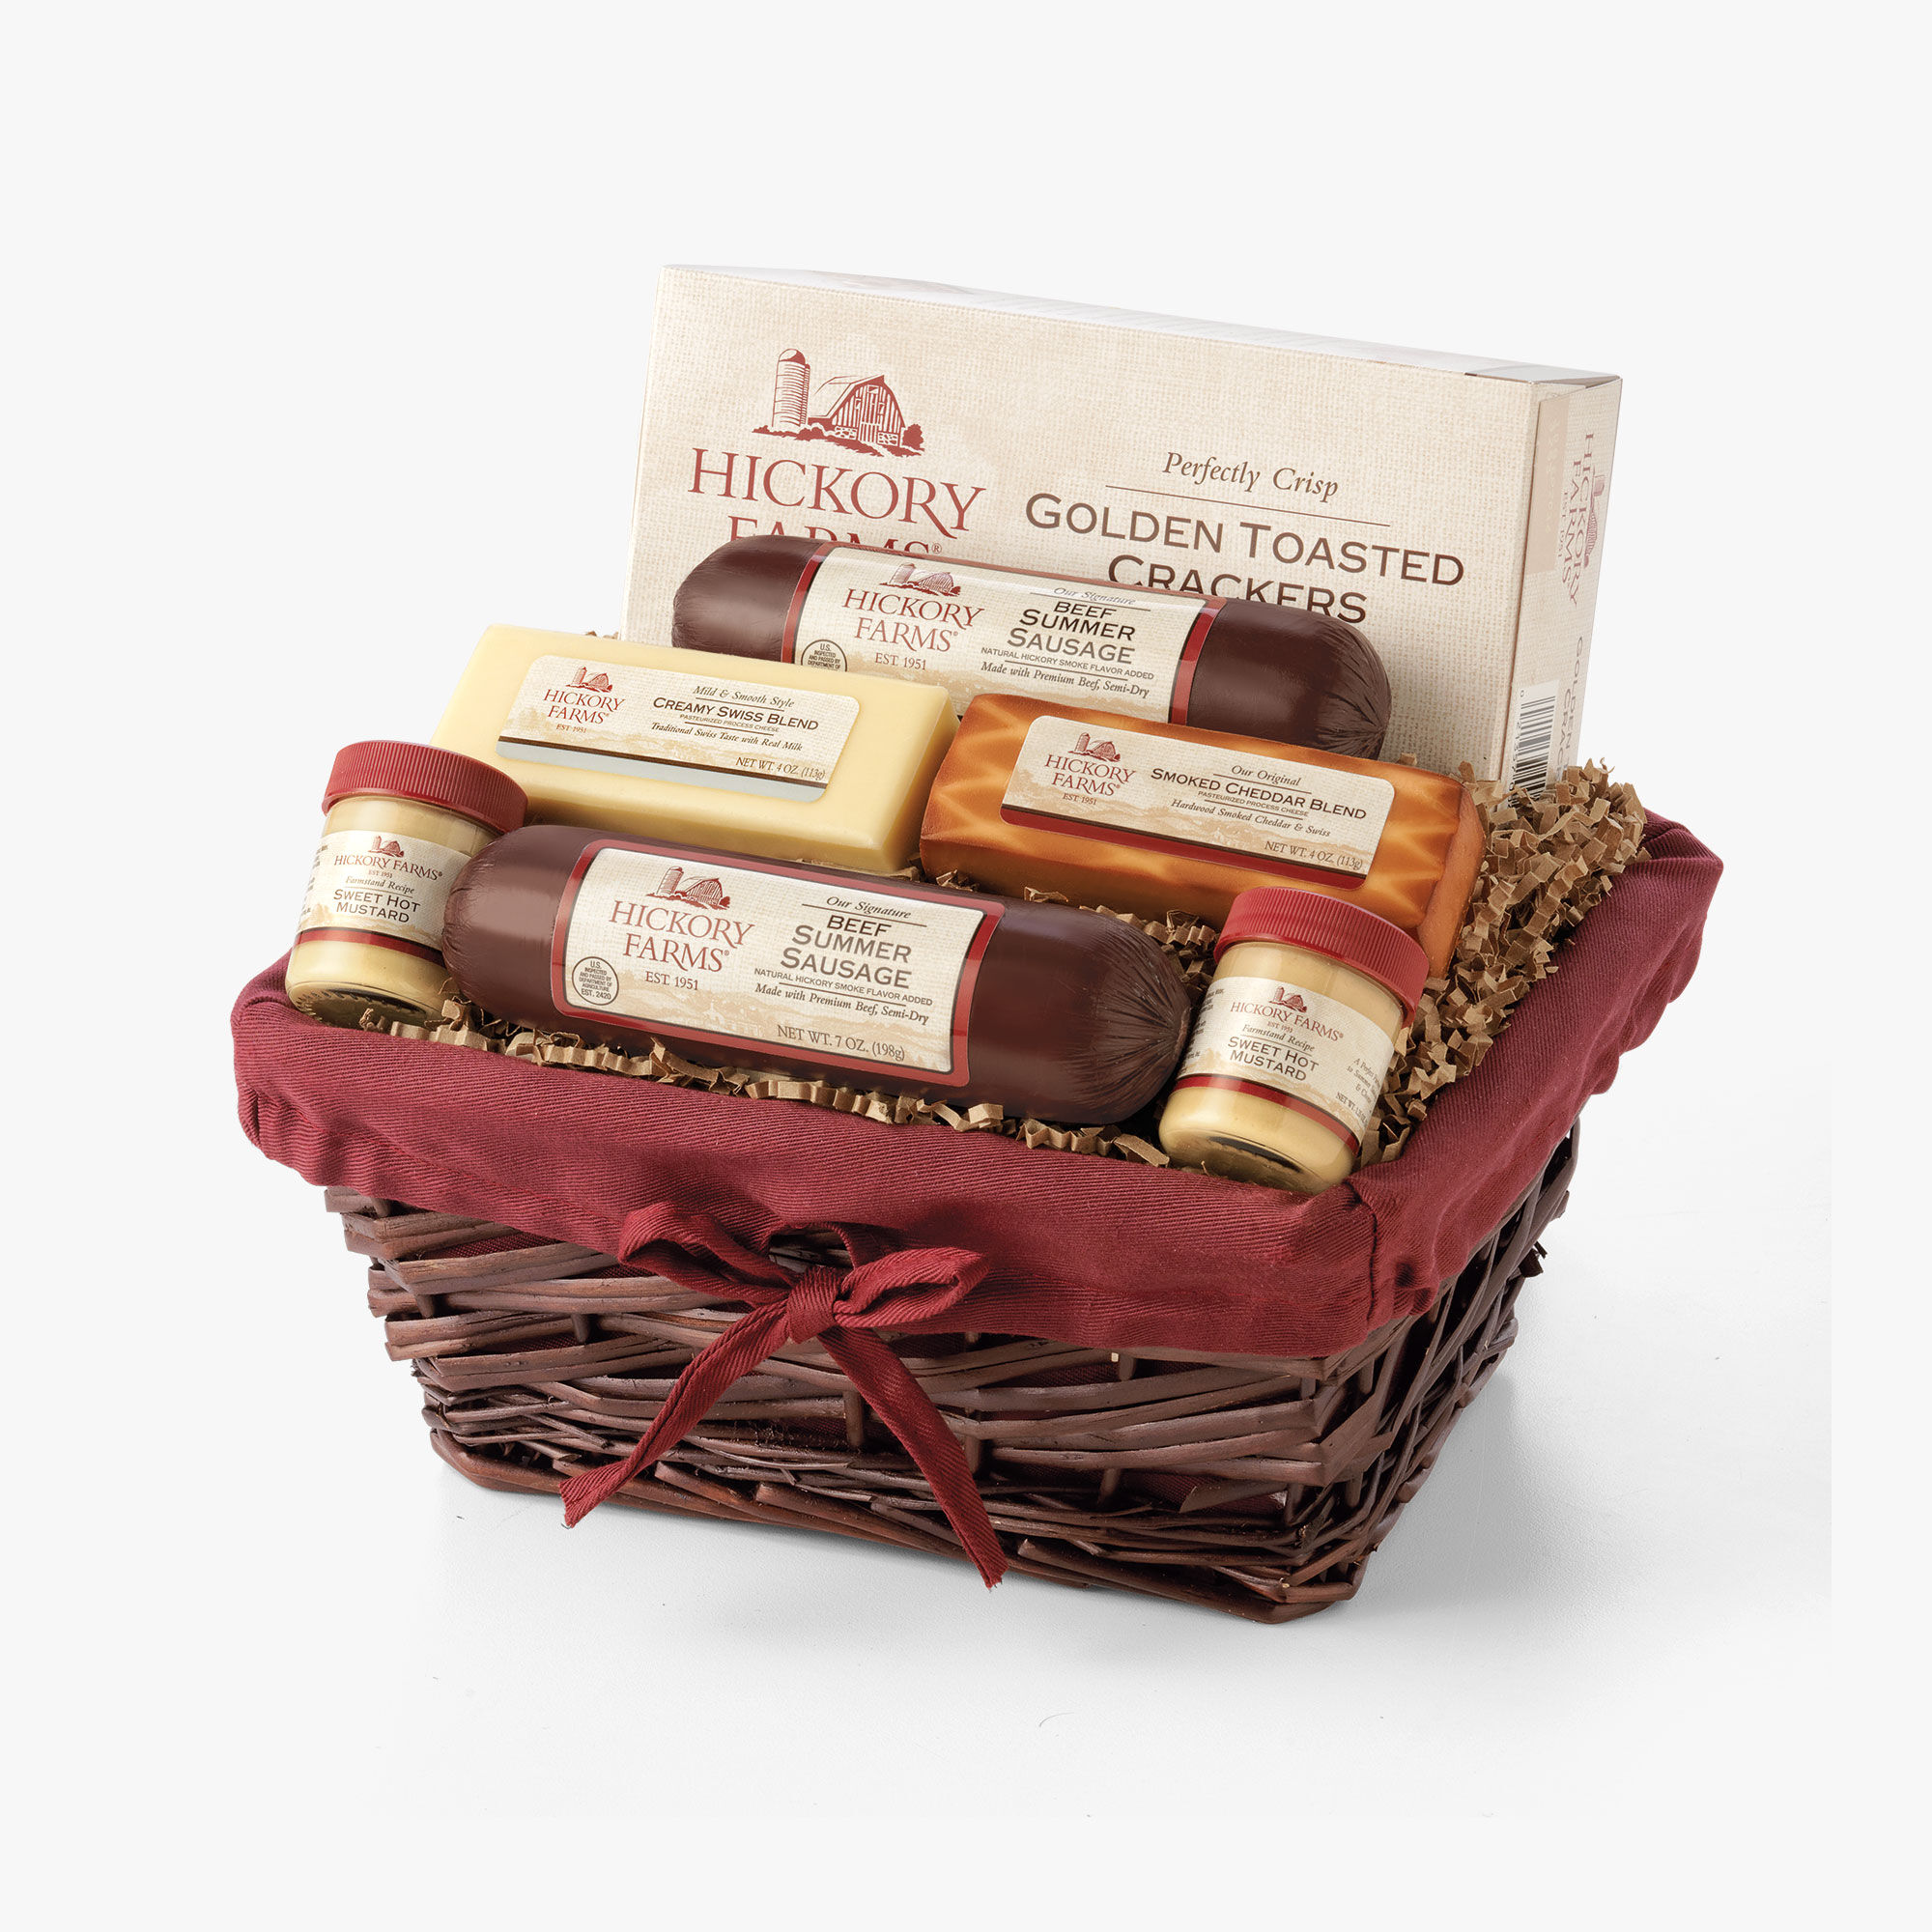 Hickory Farms Gift Baskets Review | Revuezzle